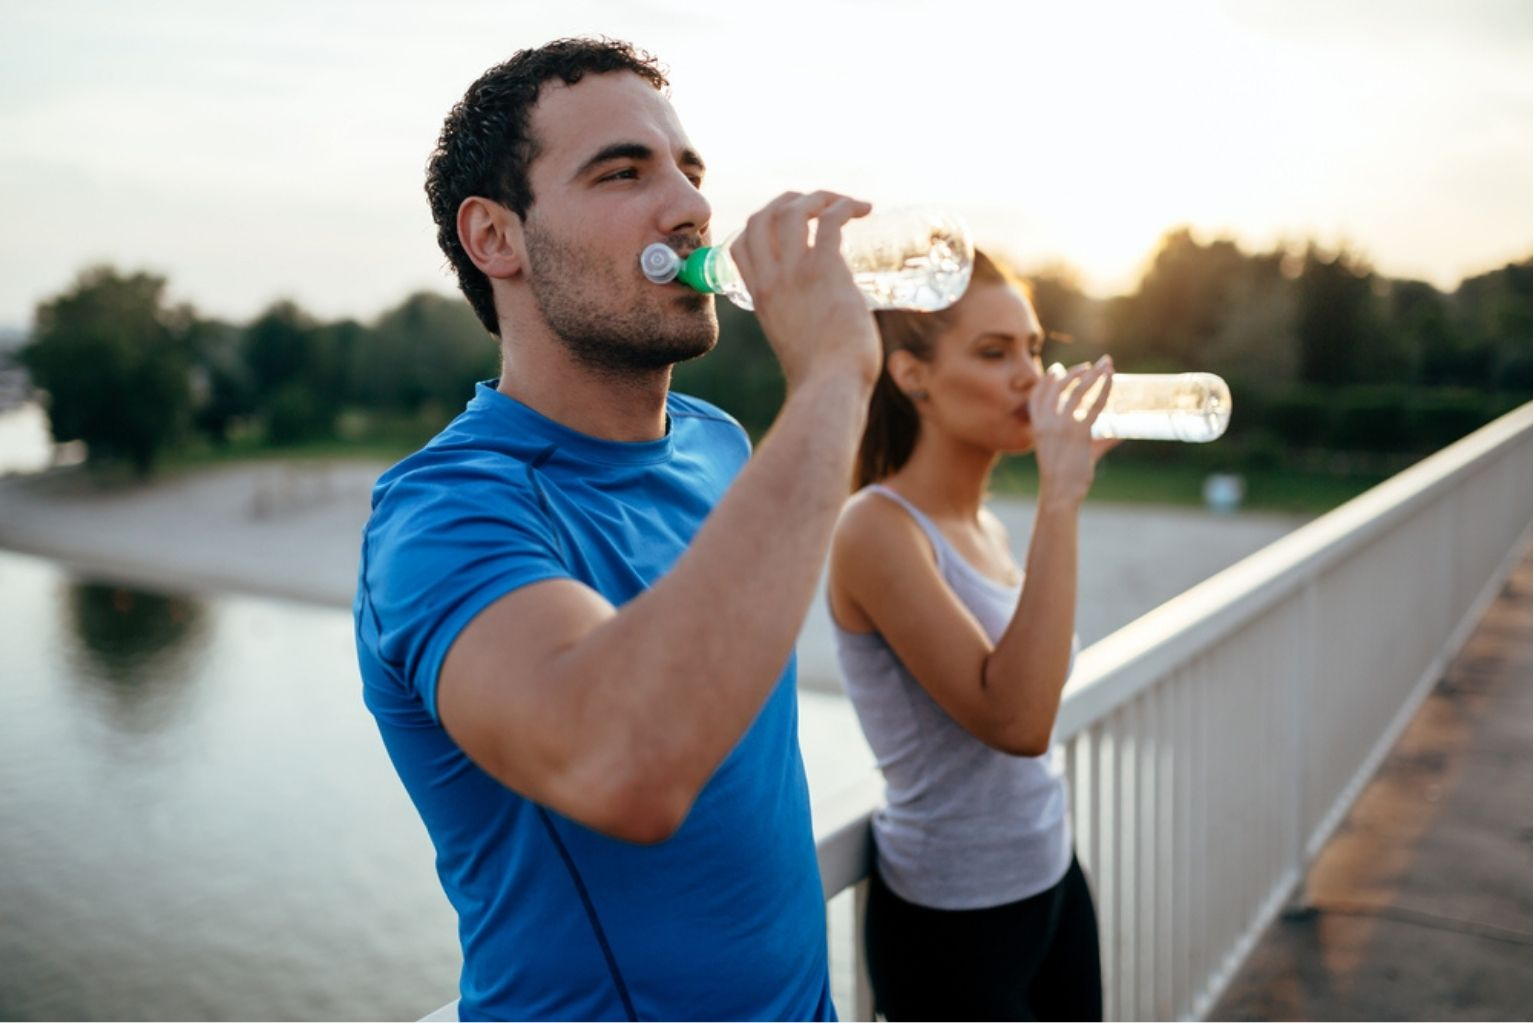 Man and woman happy and drinking water on bridge after workout